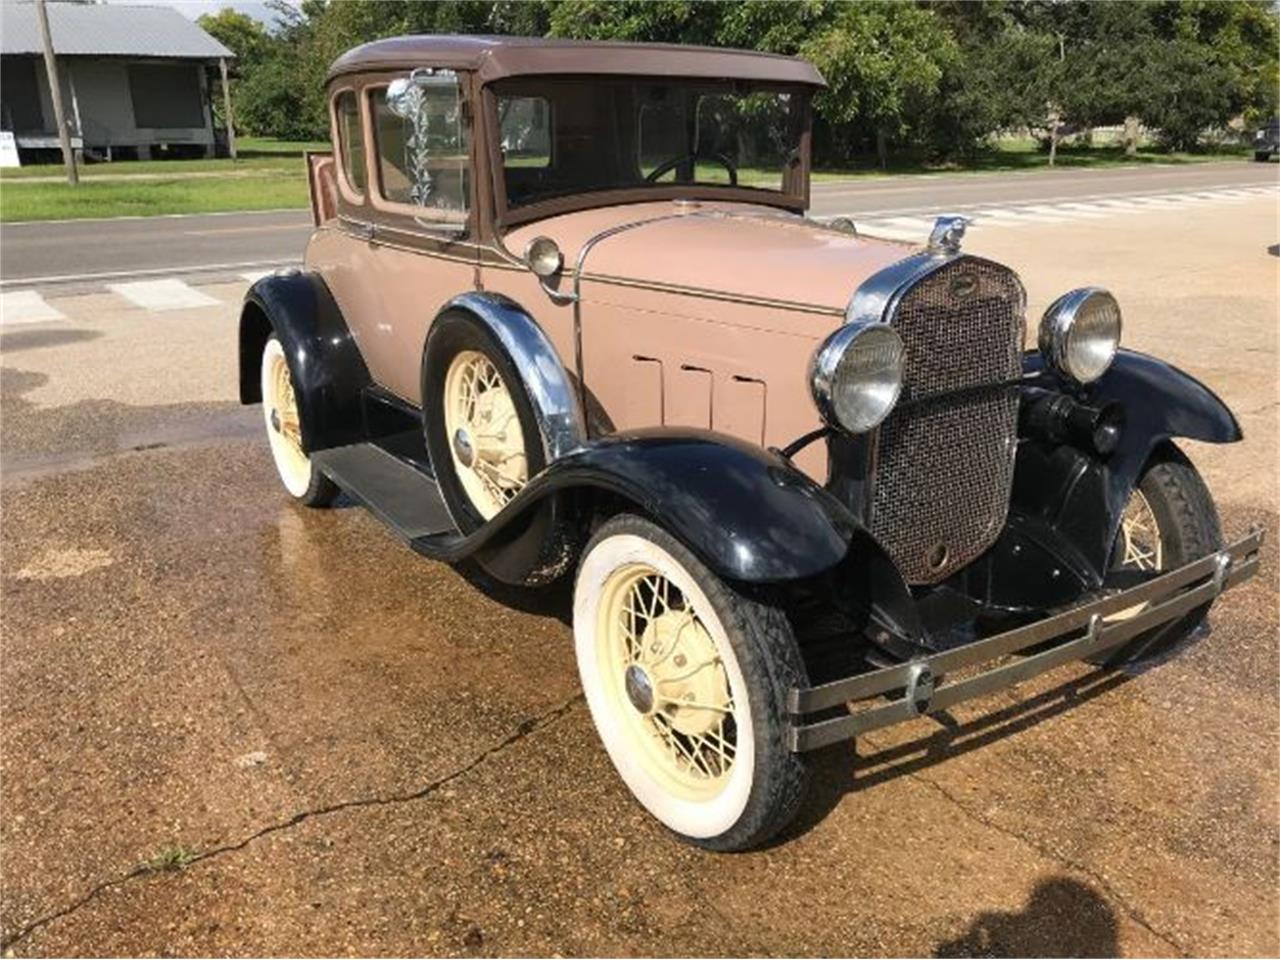 Large picture of 31 model a omwv